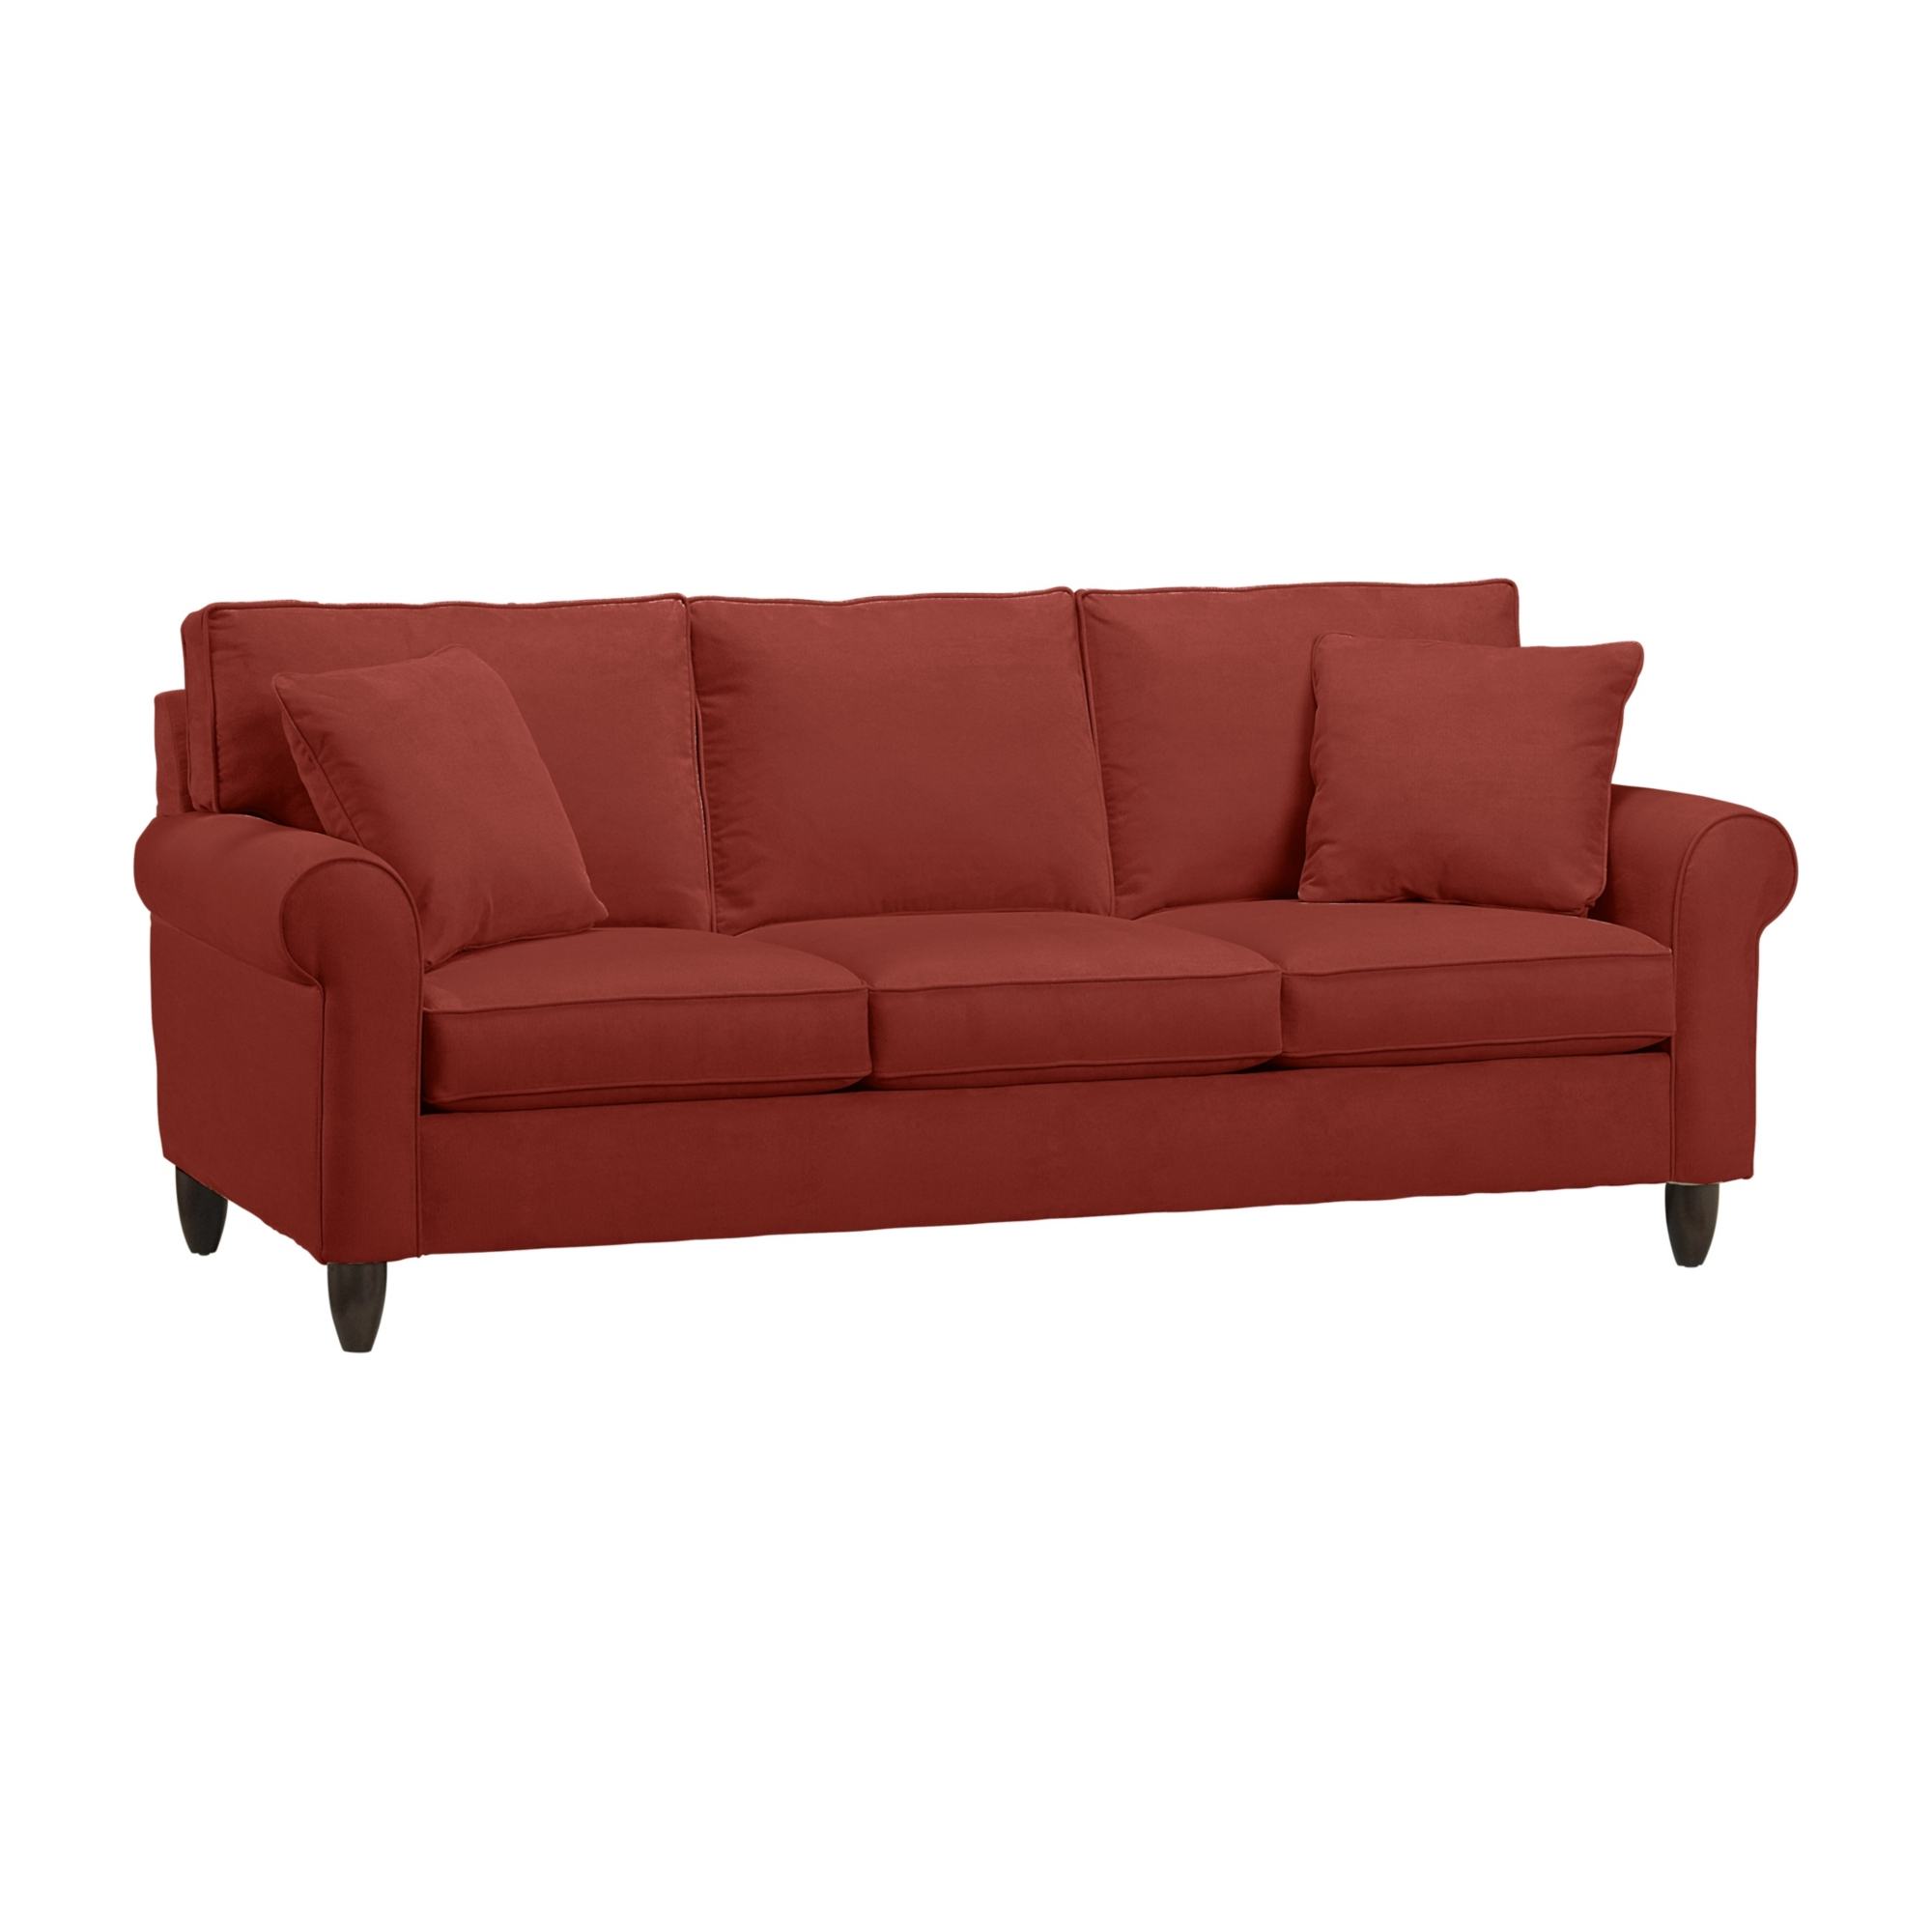 Havertys Leather Sofa Living Rooms Havertys Thesofa